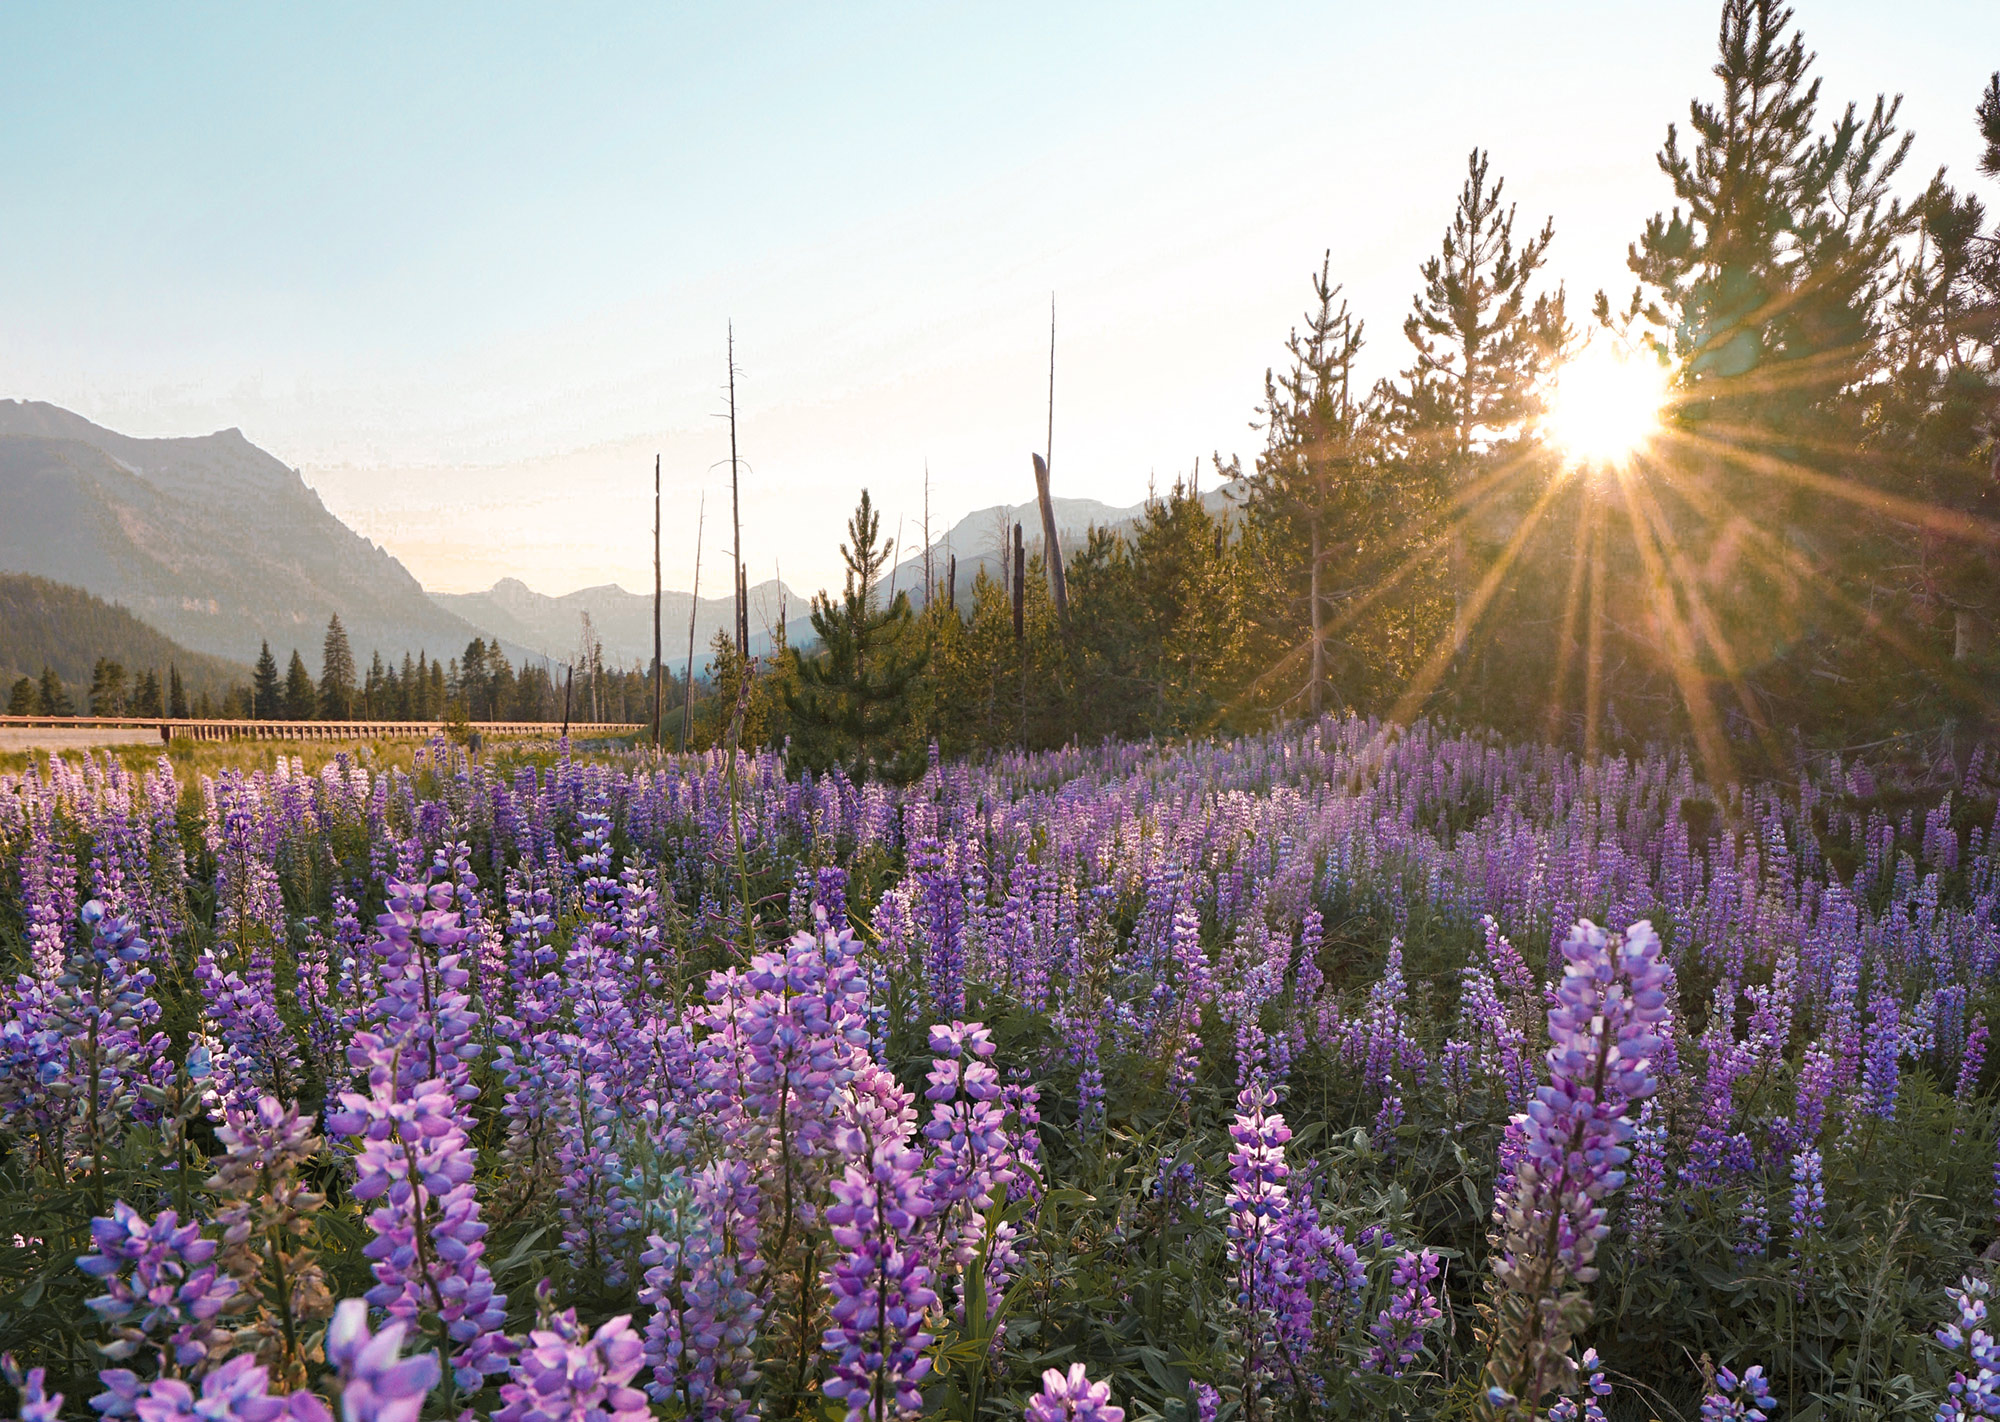 Lupin Flowers in bloom near Cooke City, Montana in Yellowstone Country.